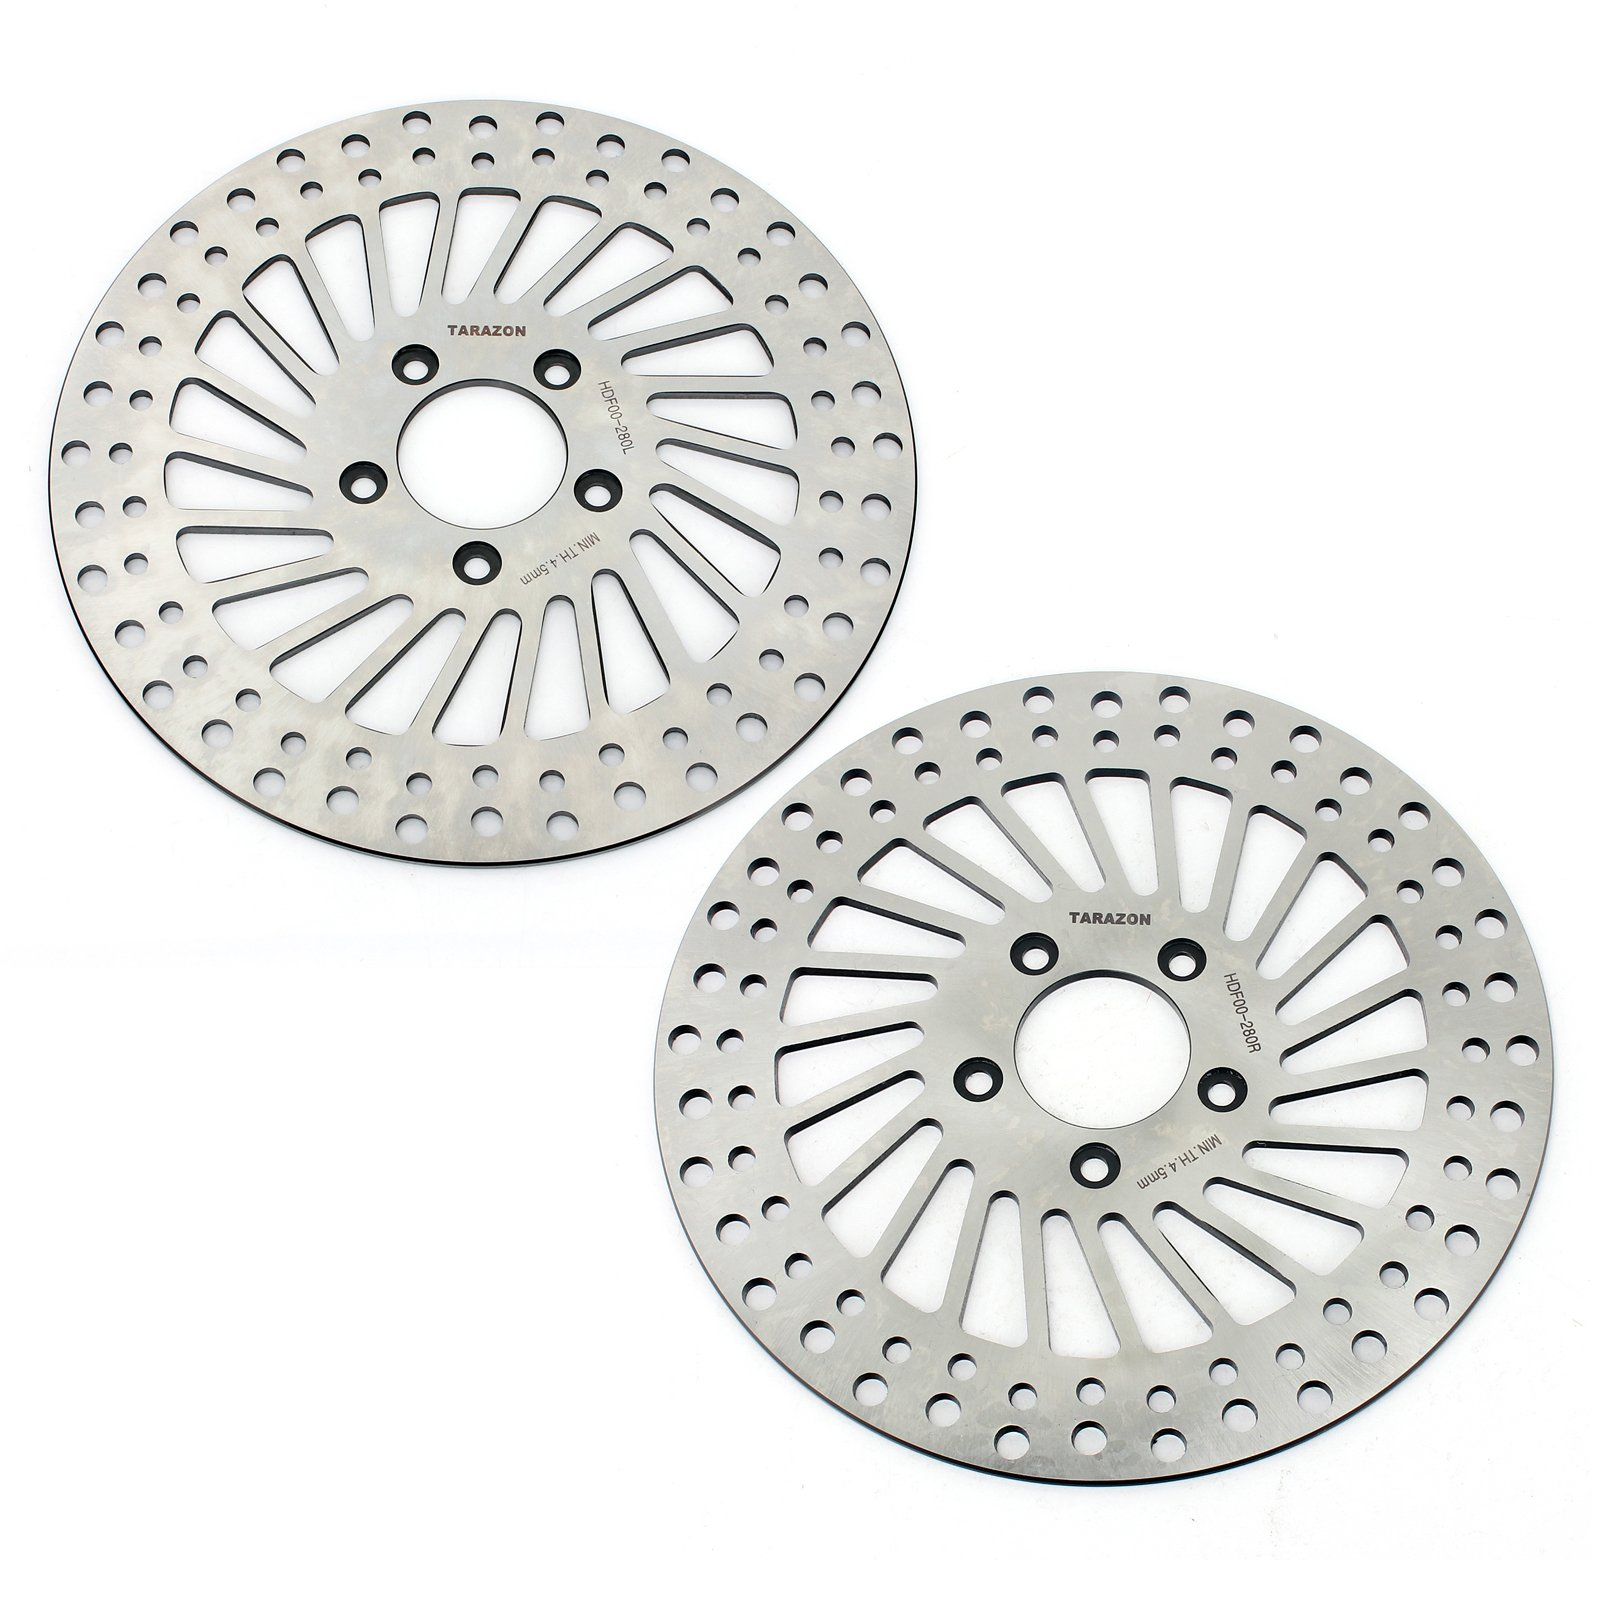 TARAZON 2pcs Front Brake Rotors for Harley Davidson Touring Bike Electra Glide Road King Road Glide Ultra Electra Glide 2000-2007 by TARAZON